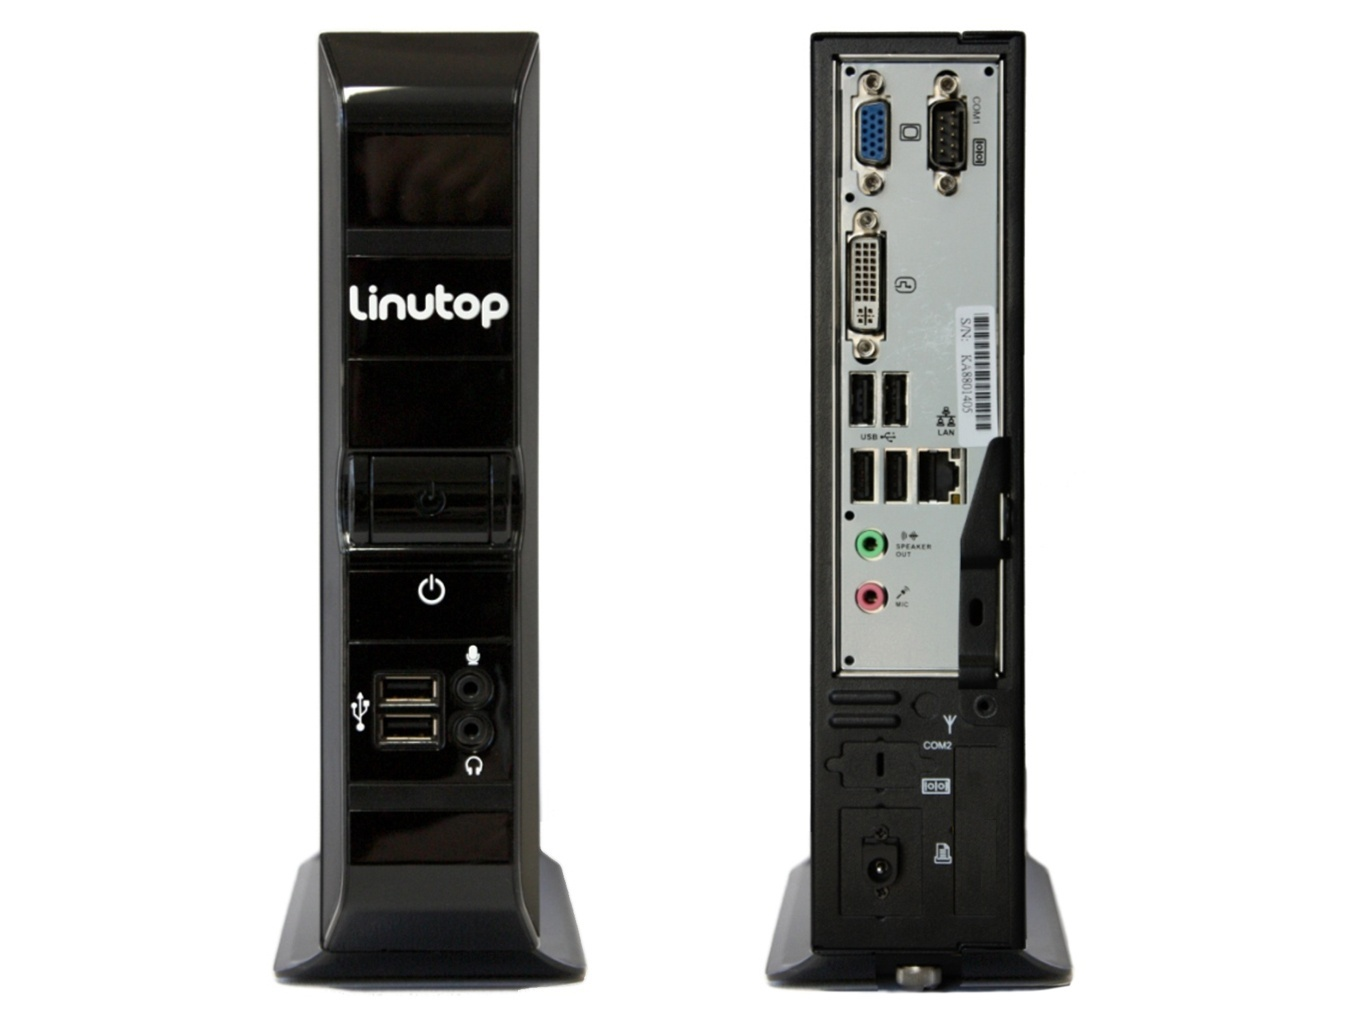 mini pc fanless linutop 3 front and back side